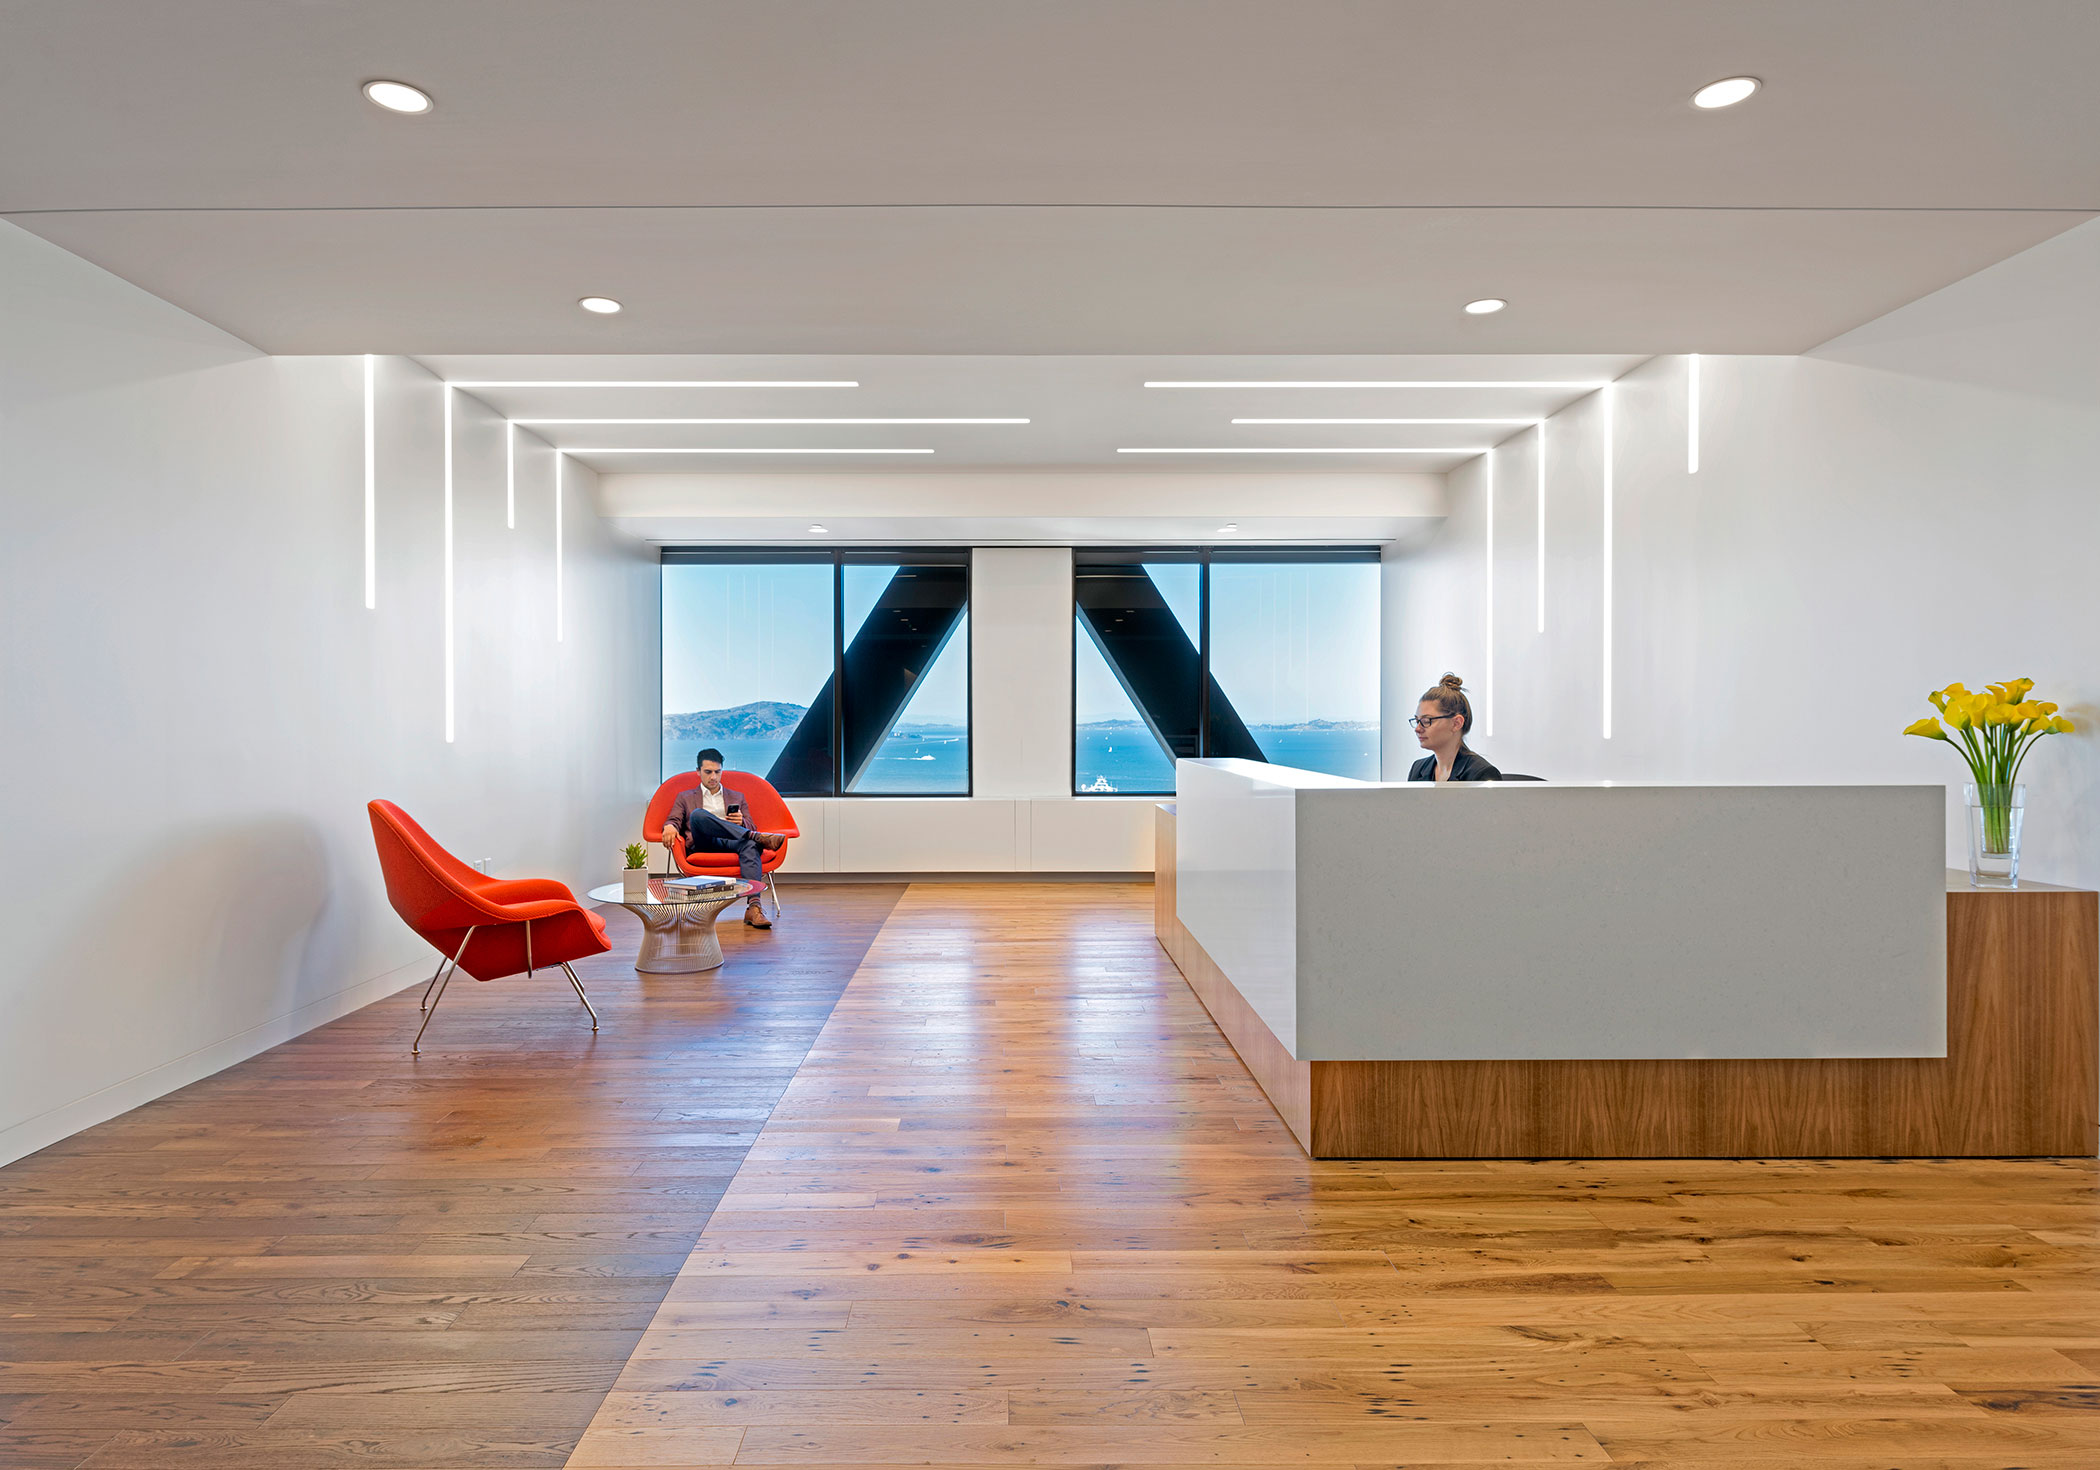 cisco san francisco office. A Global View From Elegant Views Of San Francisco. Cisco Francisco Office